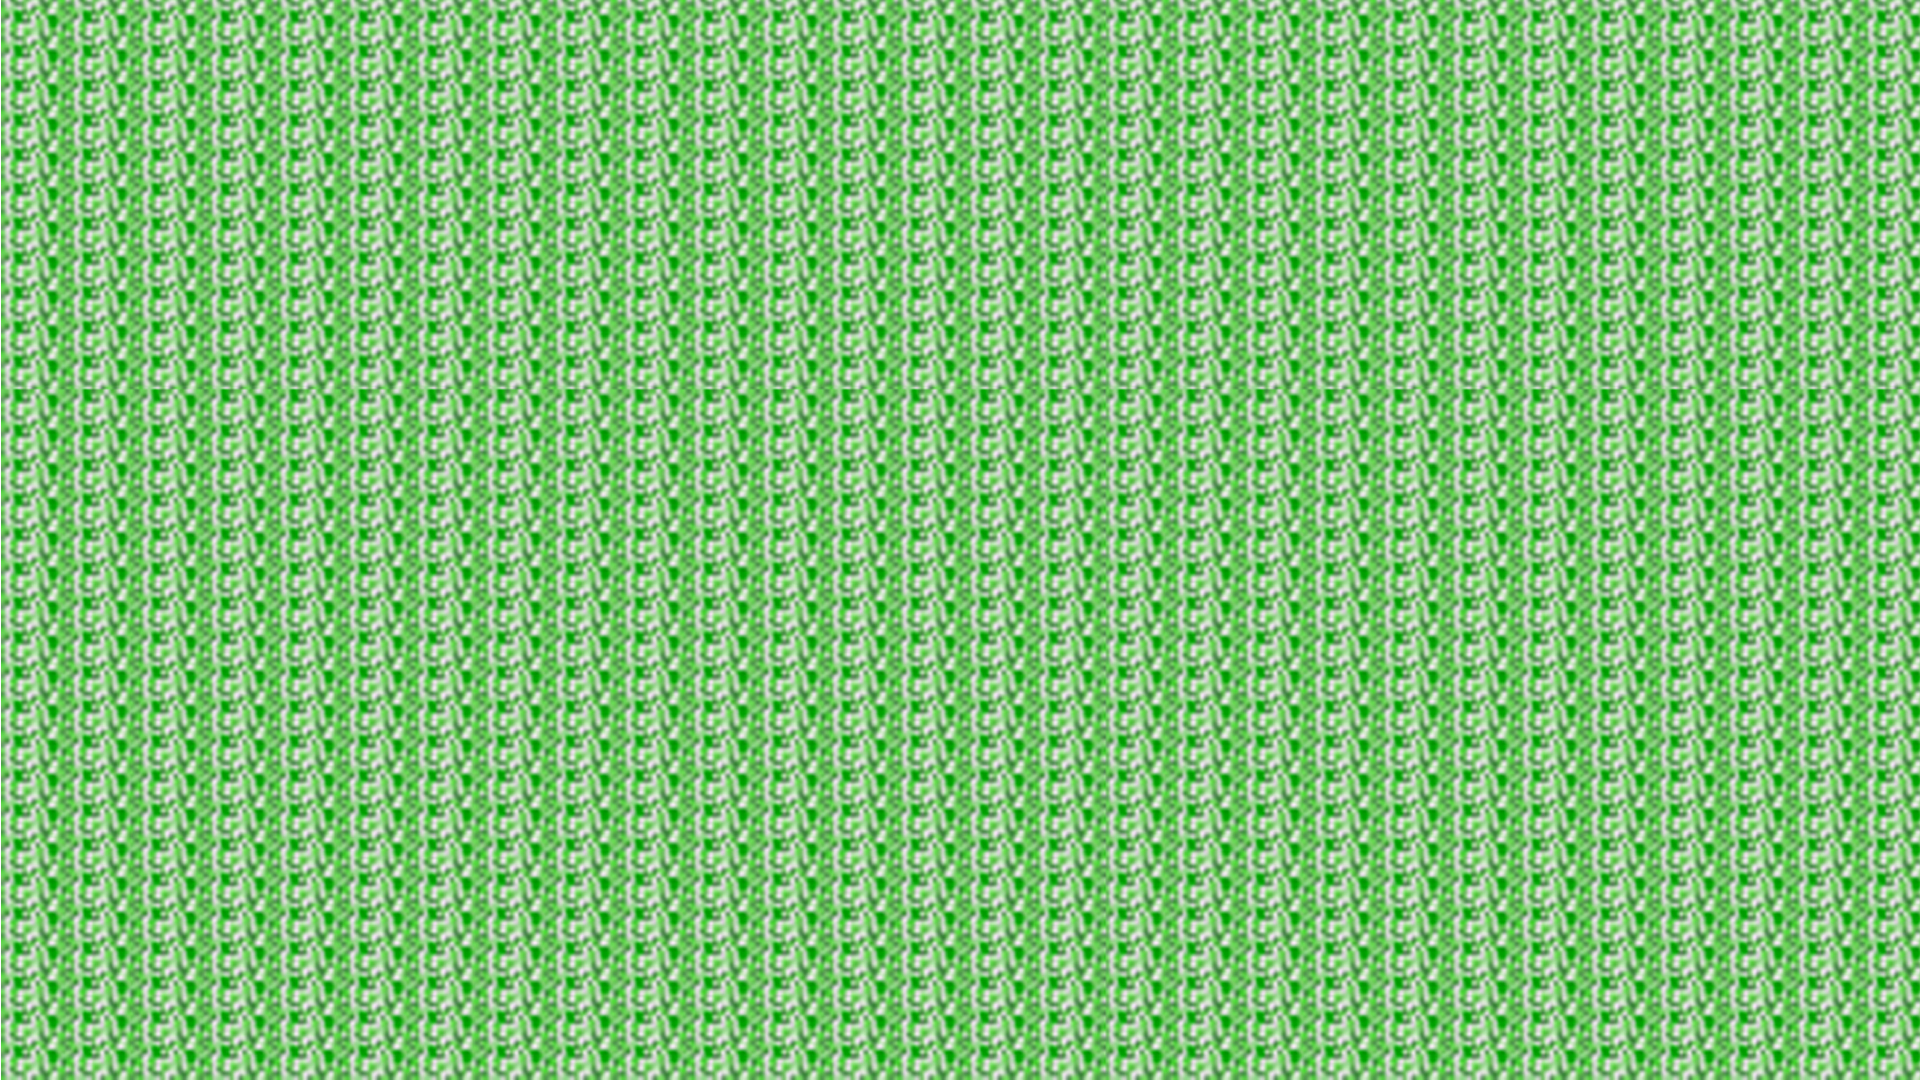 Creeper Skin Wallpaper By Frostyvamp On Deviantart